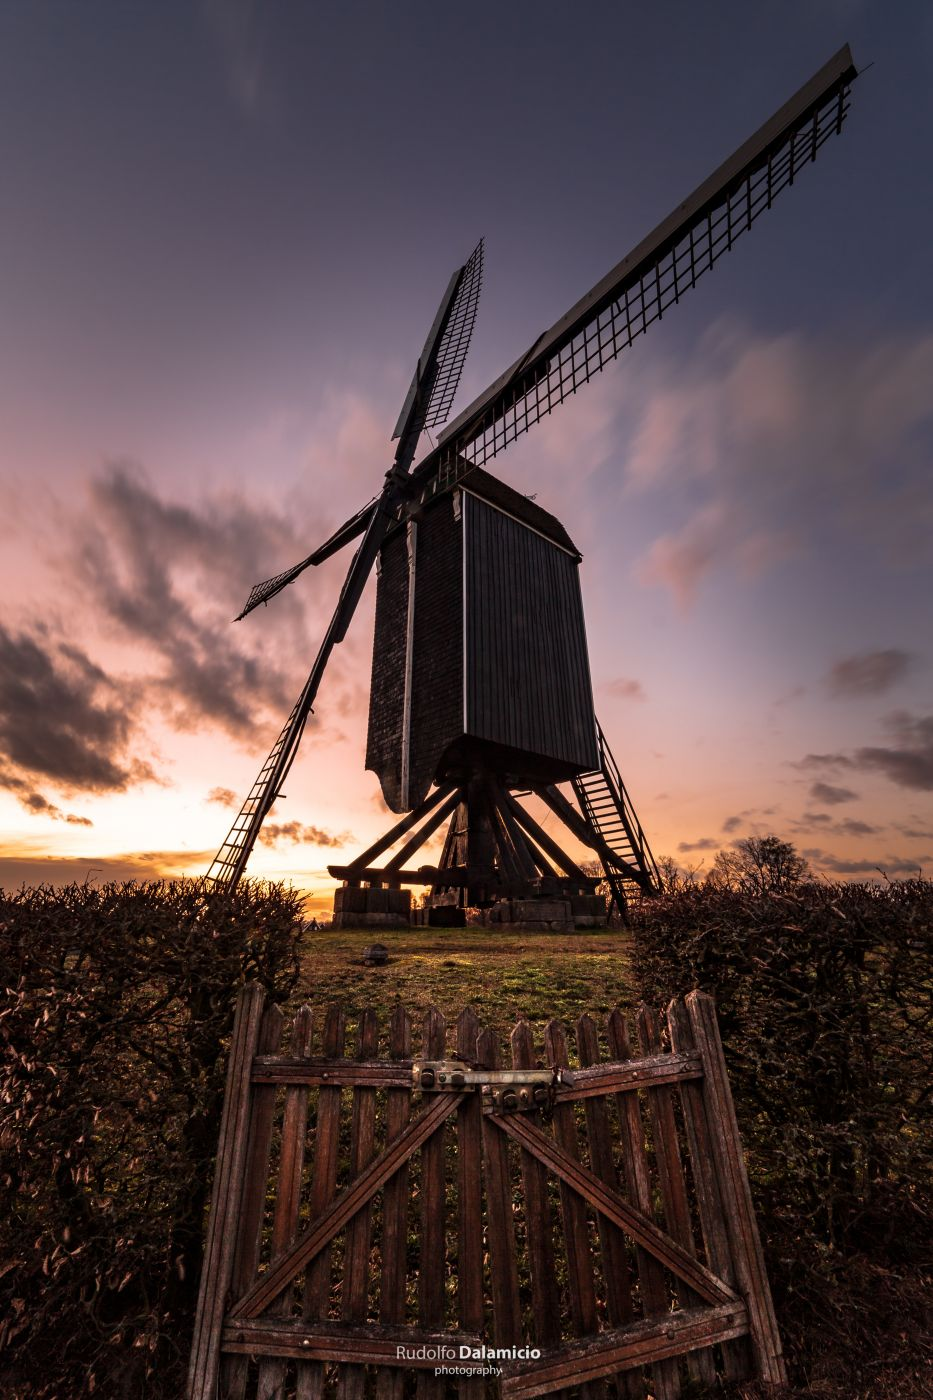 Incredimill, Netherlands